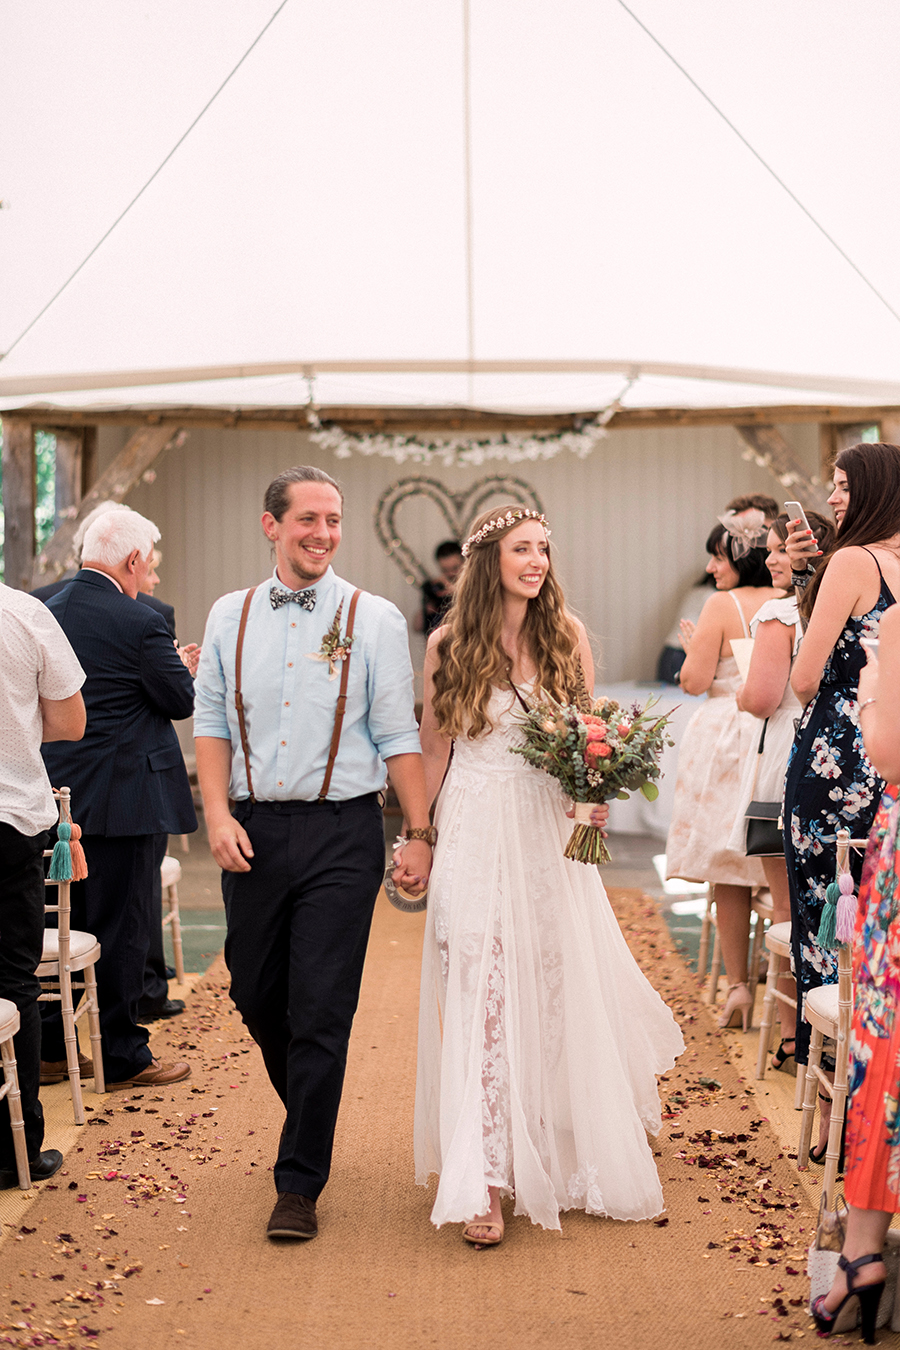 Dreamy boho wedding at Houchins Farm with images by Kathryn Hopkins Photography (11)